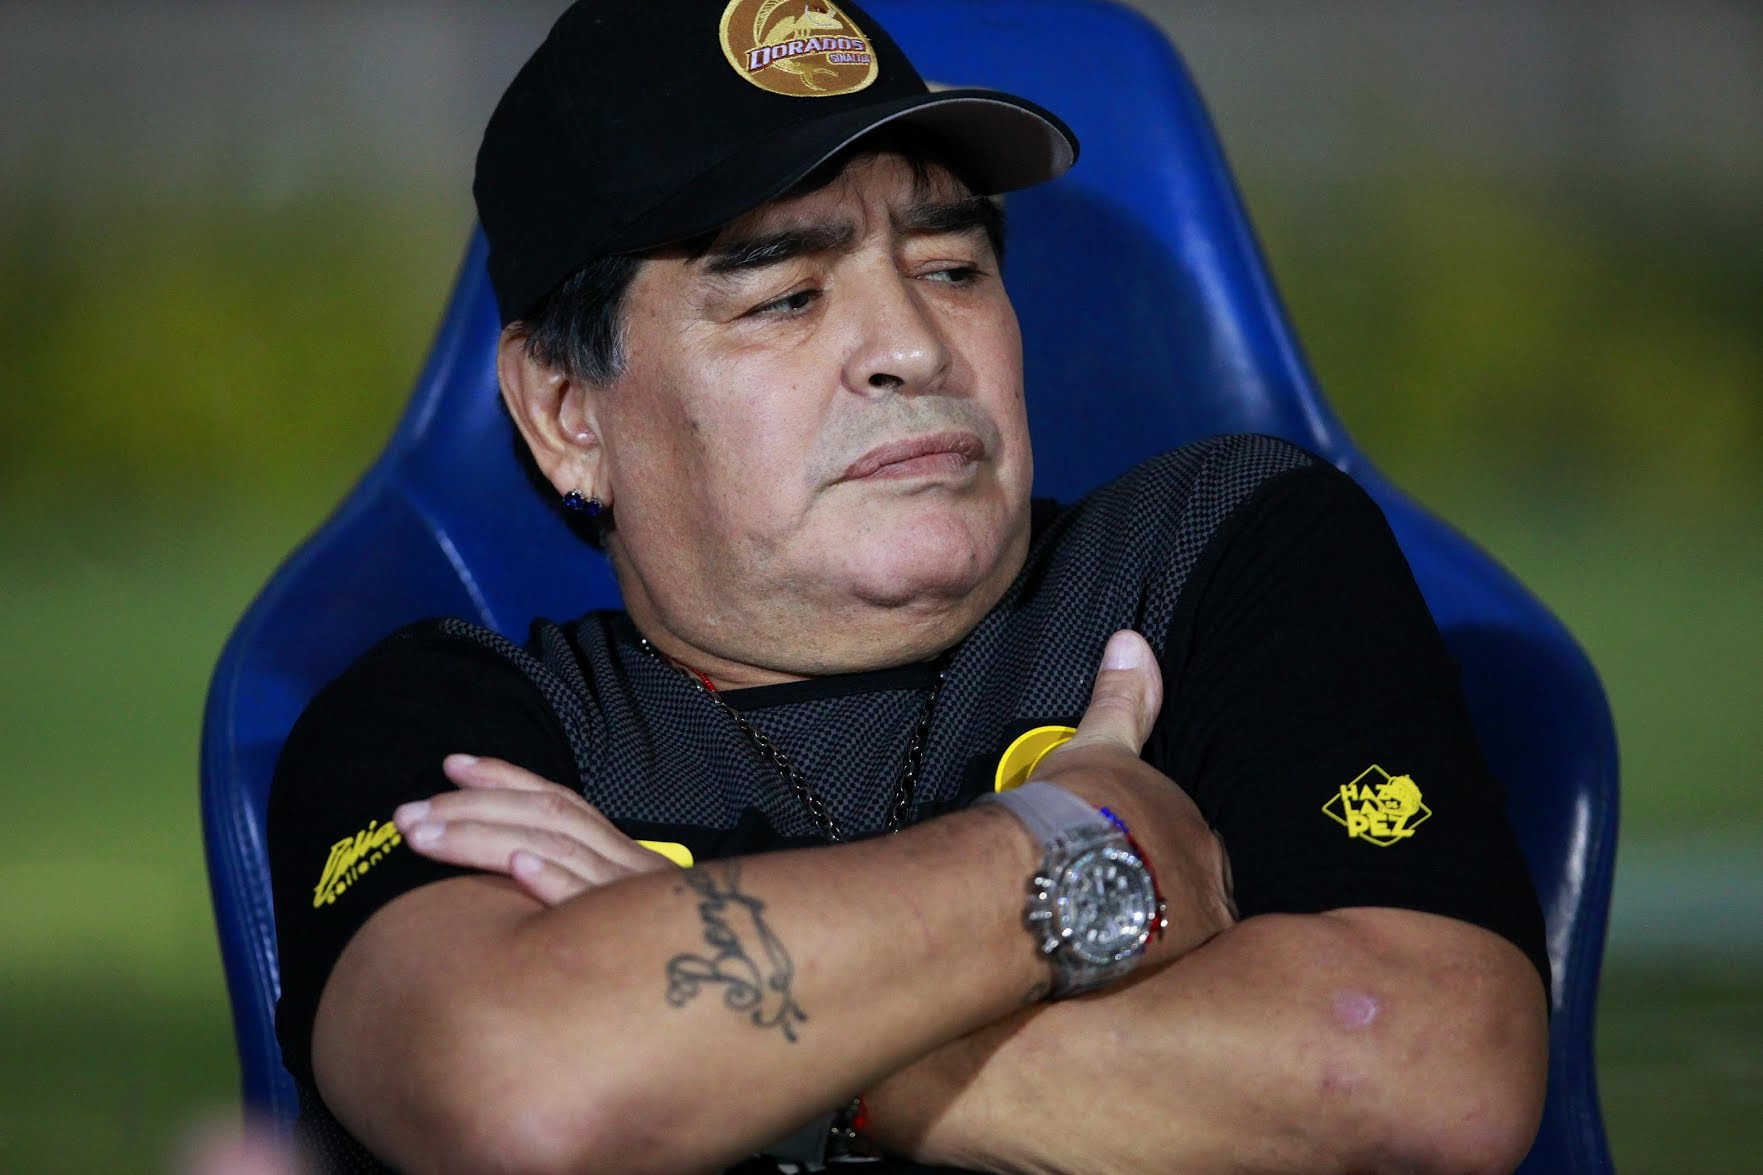 Maradona autopsy shows no drink, illegal drugs